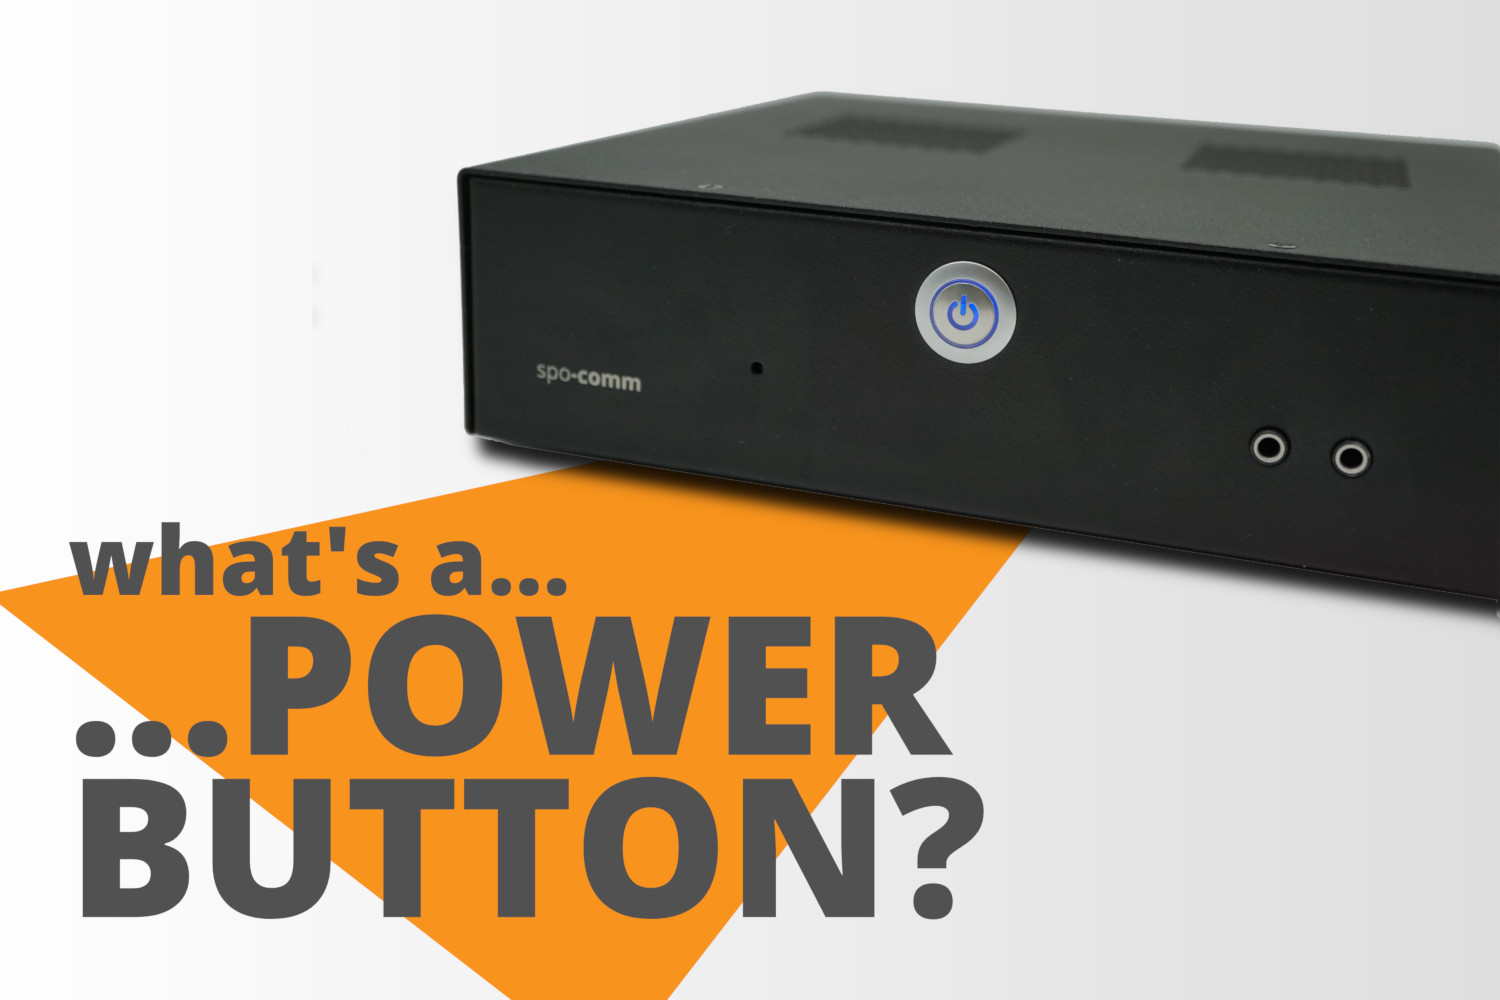 What is a power button?